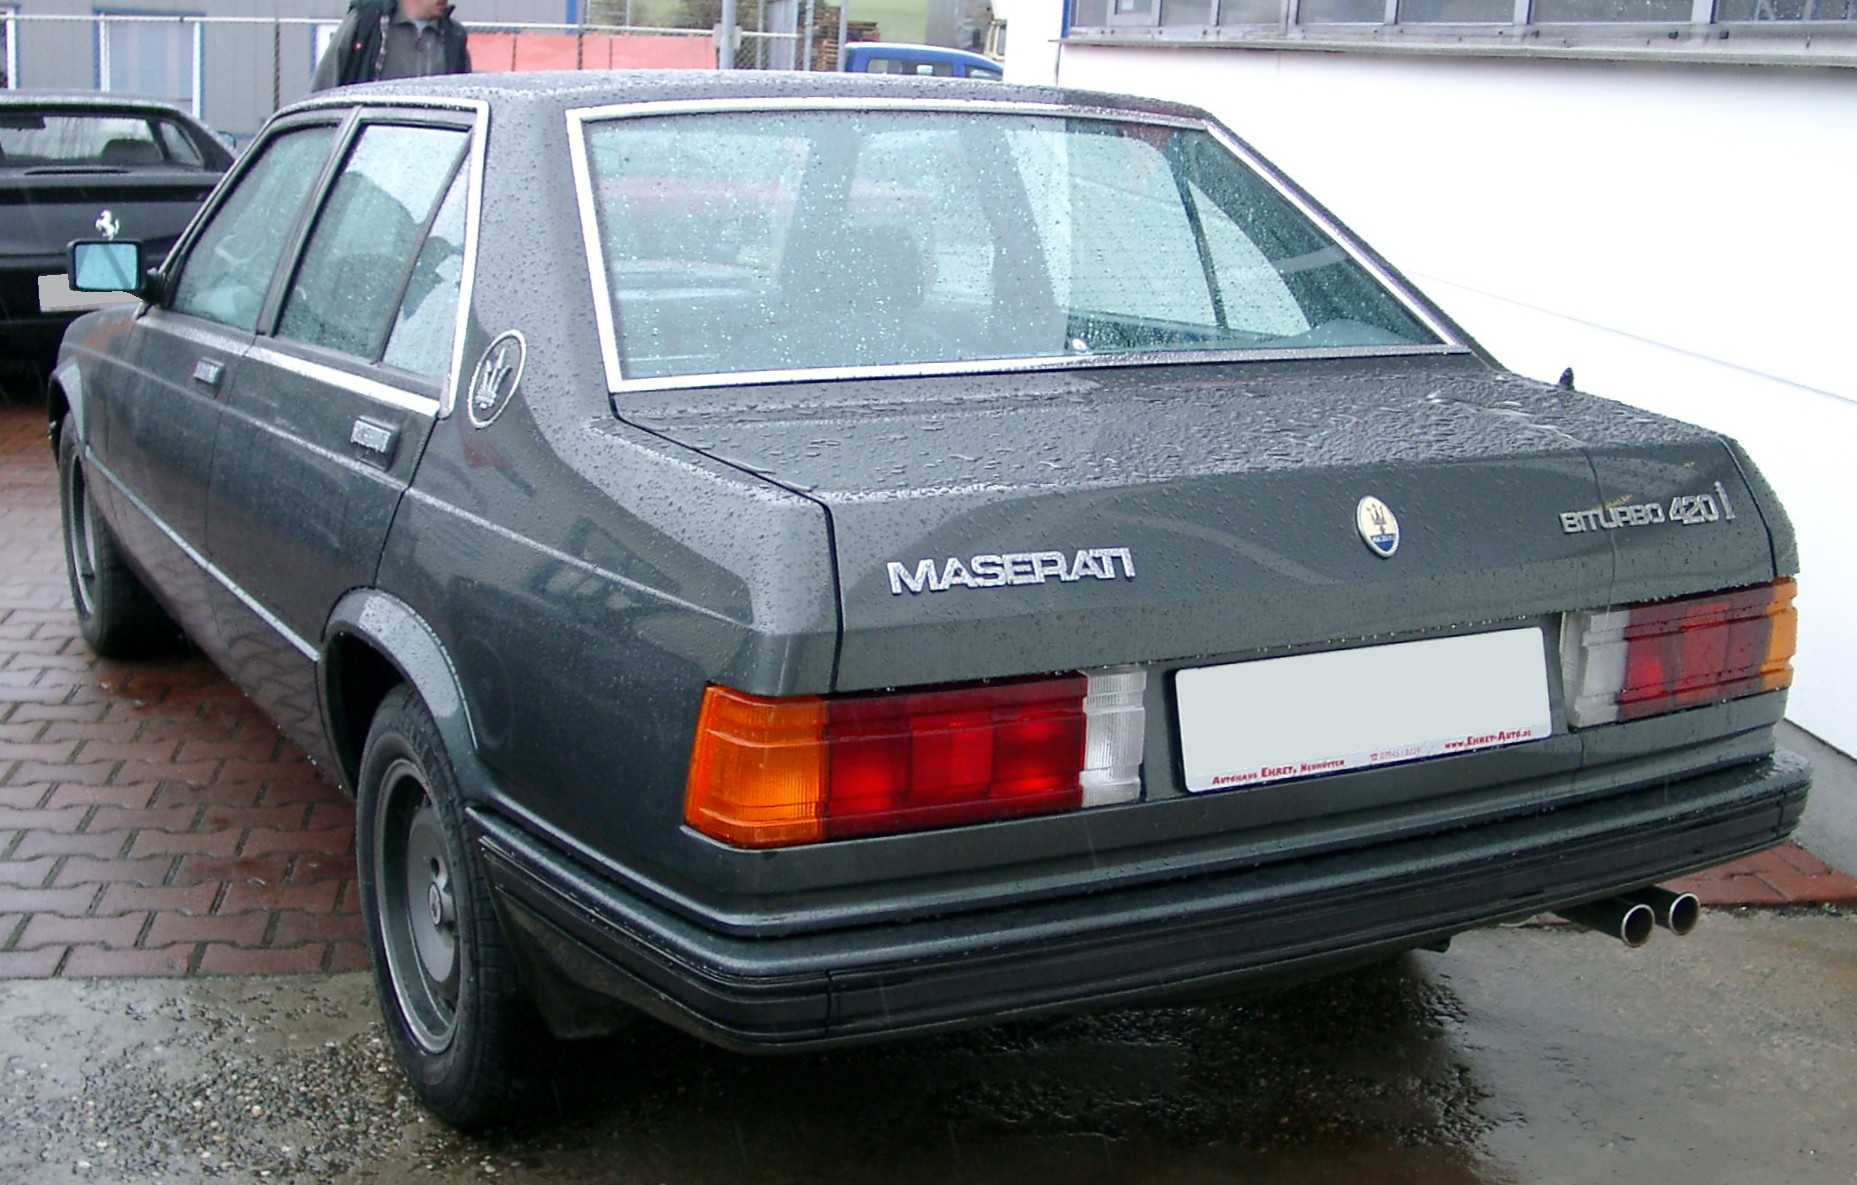 1990 Maserati Biturbo - pictures, information and specs ...